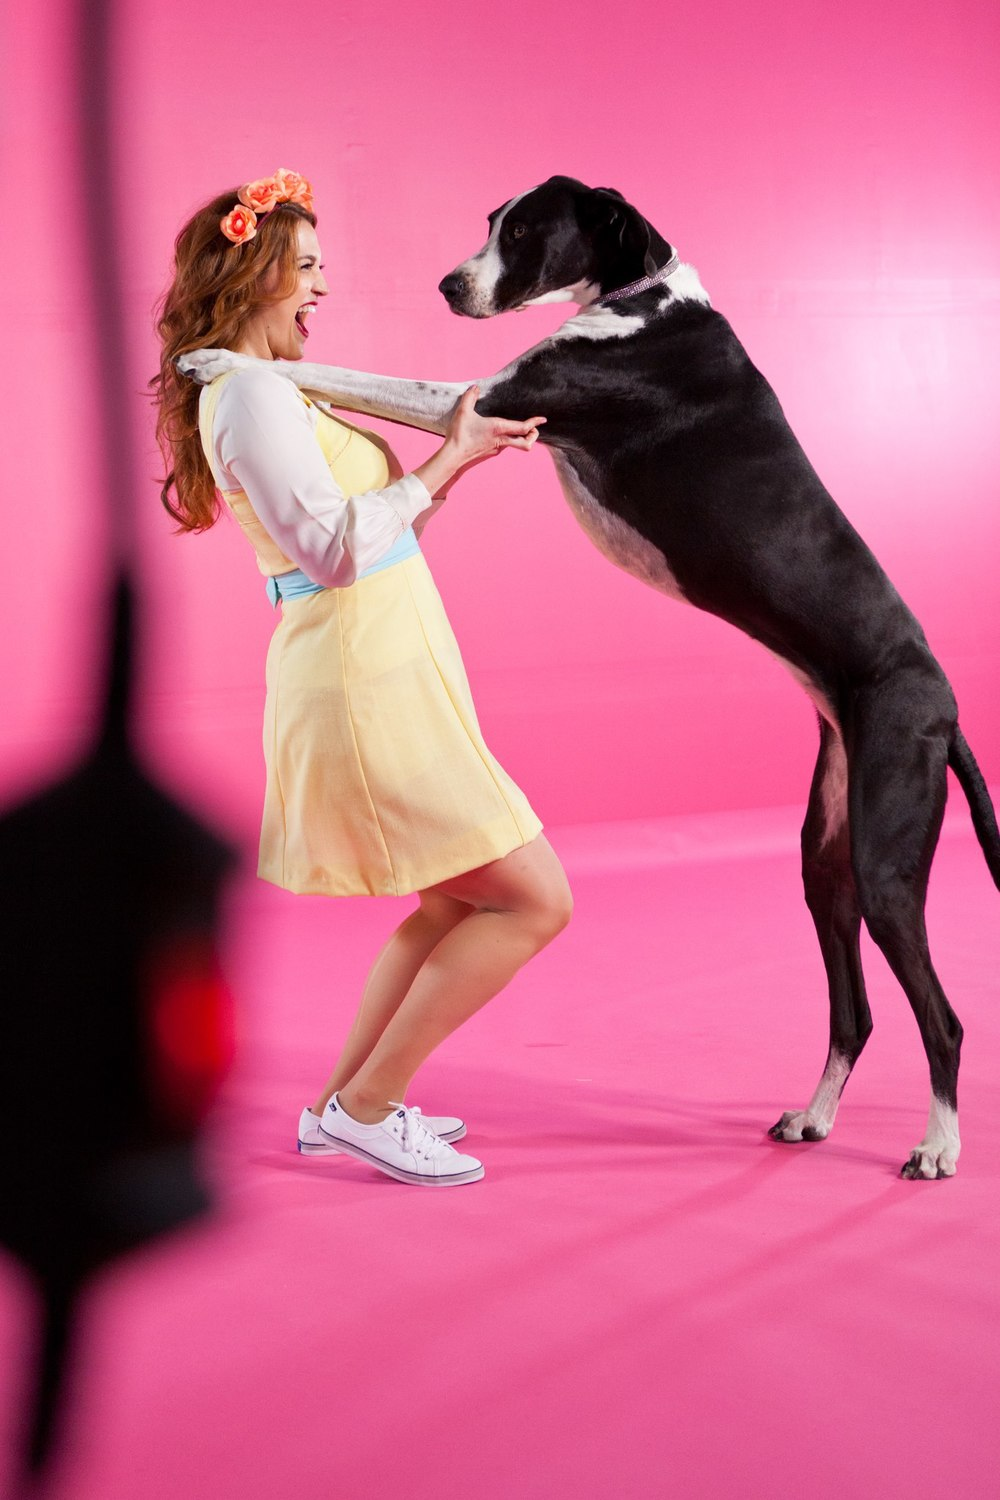 Great Dane Kiss_2 via Neil Lockhart.jpg